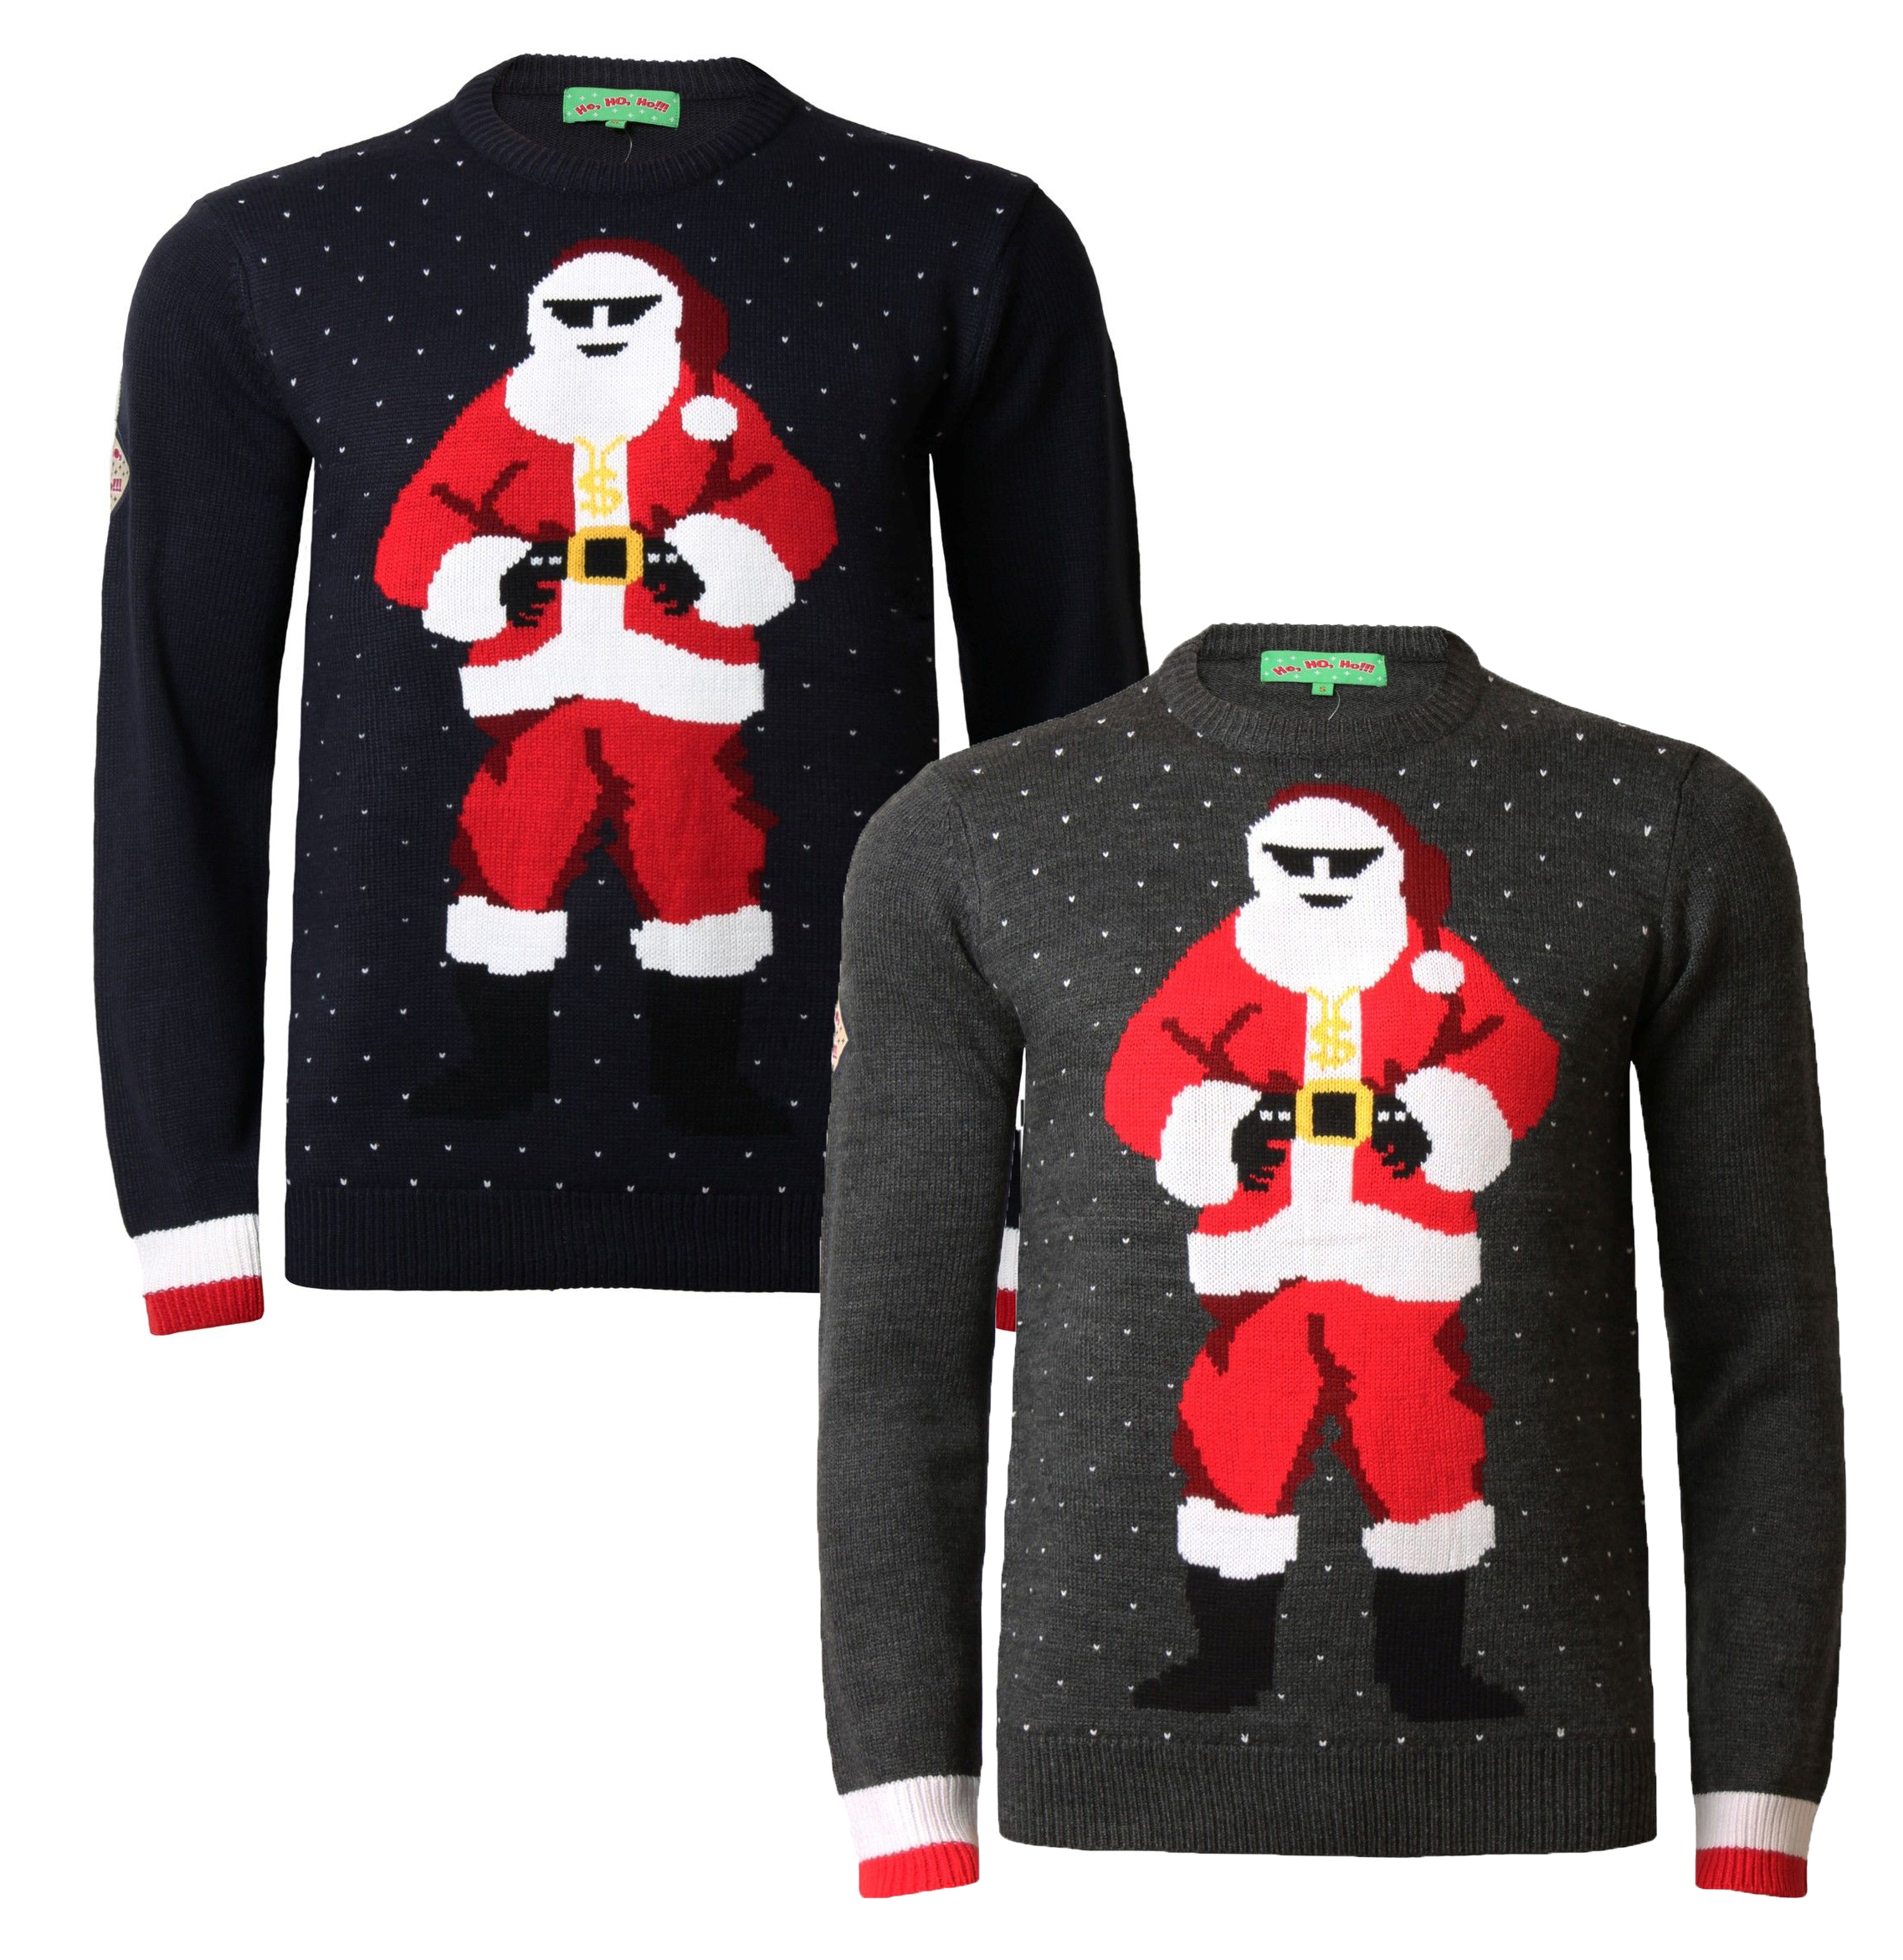 Novelty Christmas Jumpers Knitting Pattern : Christmas jumpers new novelty xmas knit sweaters hohoho